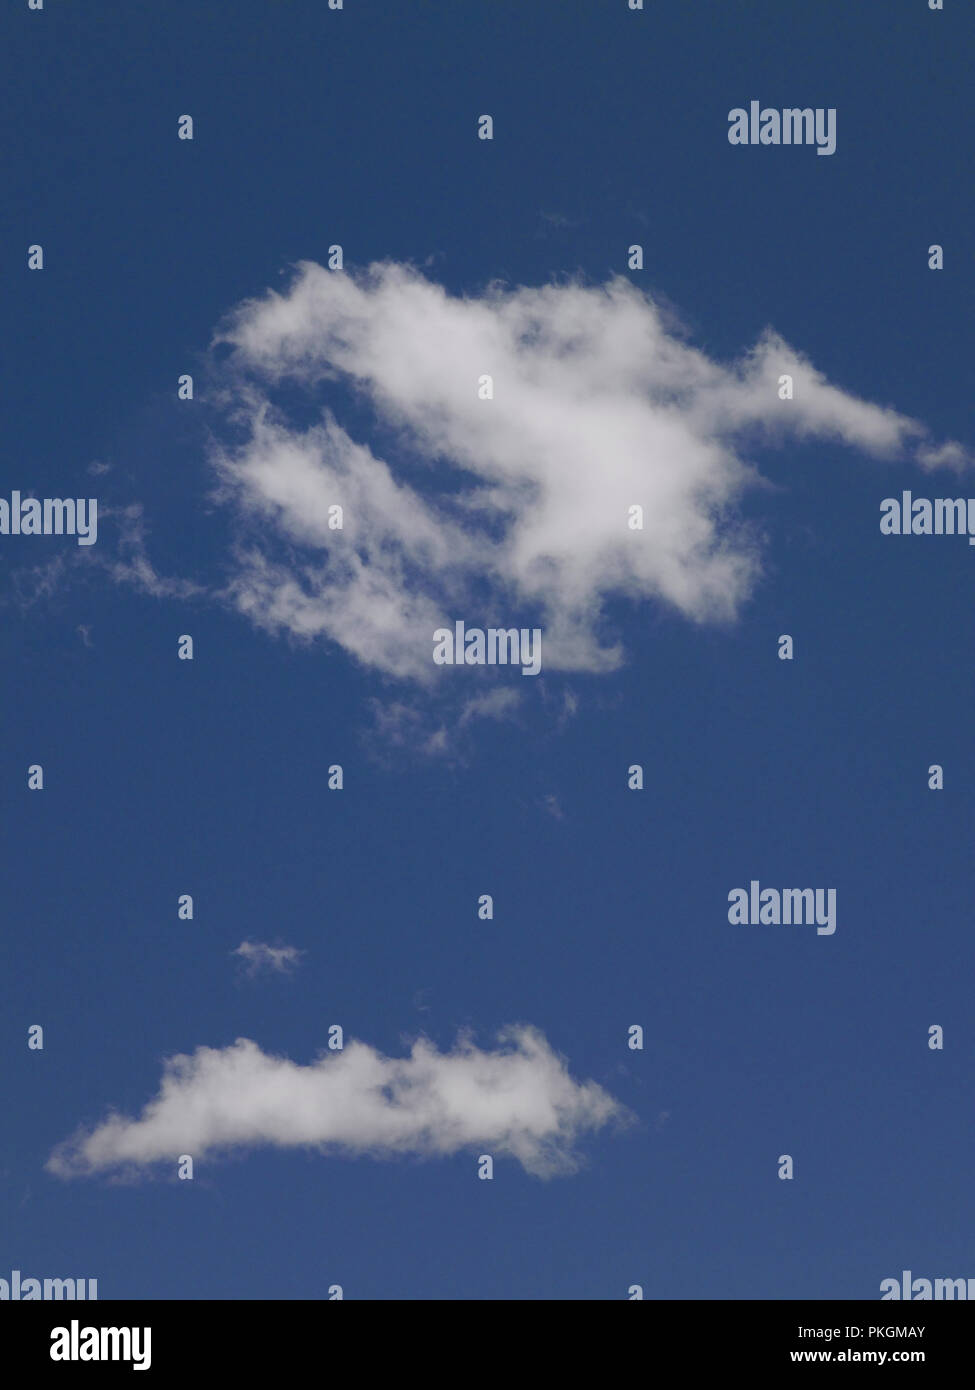 CLOUDS, LADAKH, JAMMU & KASHMIR, INDIA, ASIA, - Stock Image